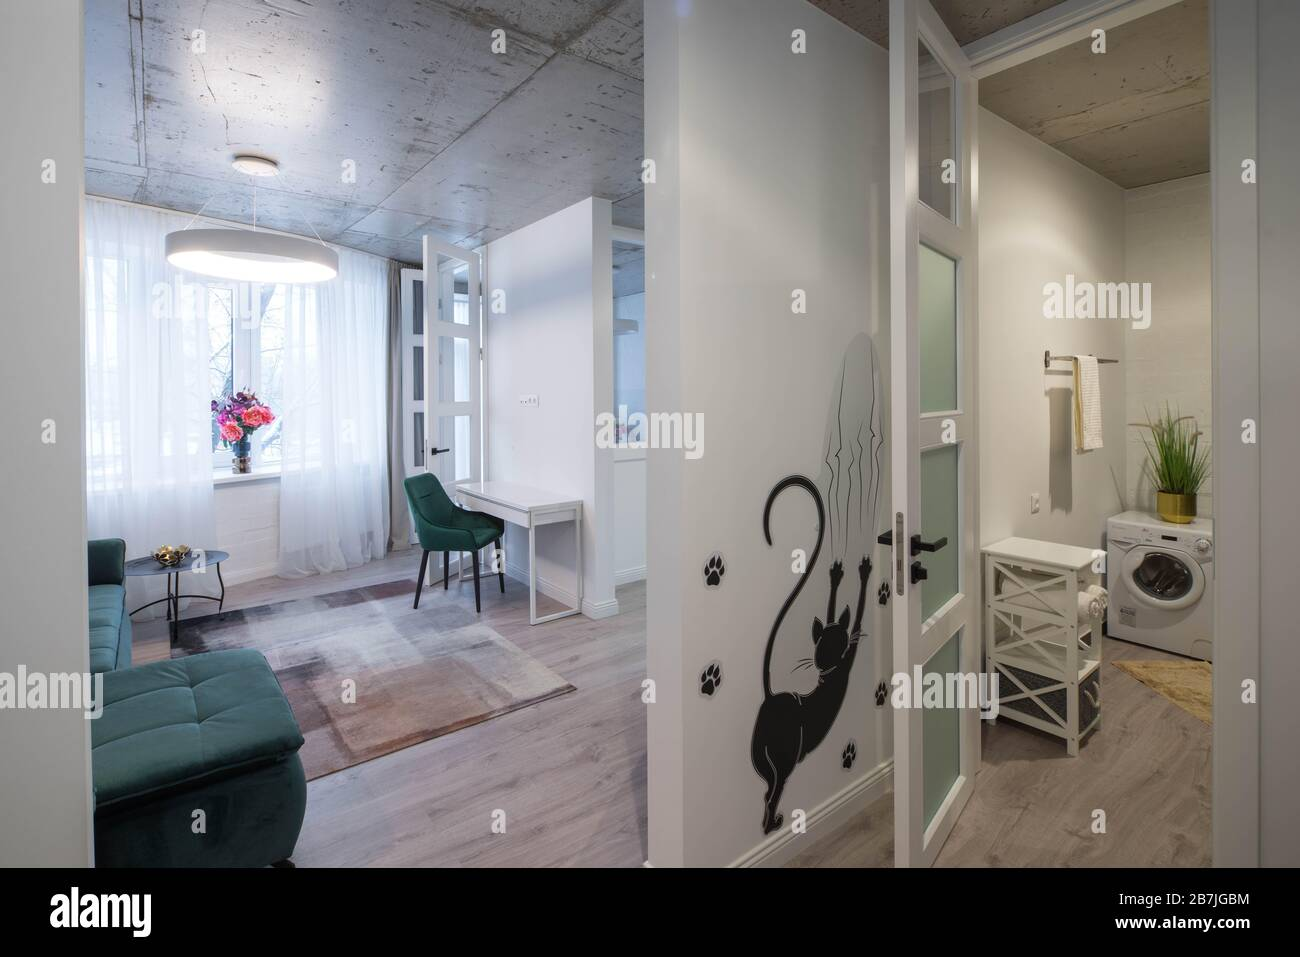 Modern Luxury Interior Of Apartment Living Room And Bathroom Private House Stock Photo Alamy